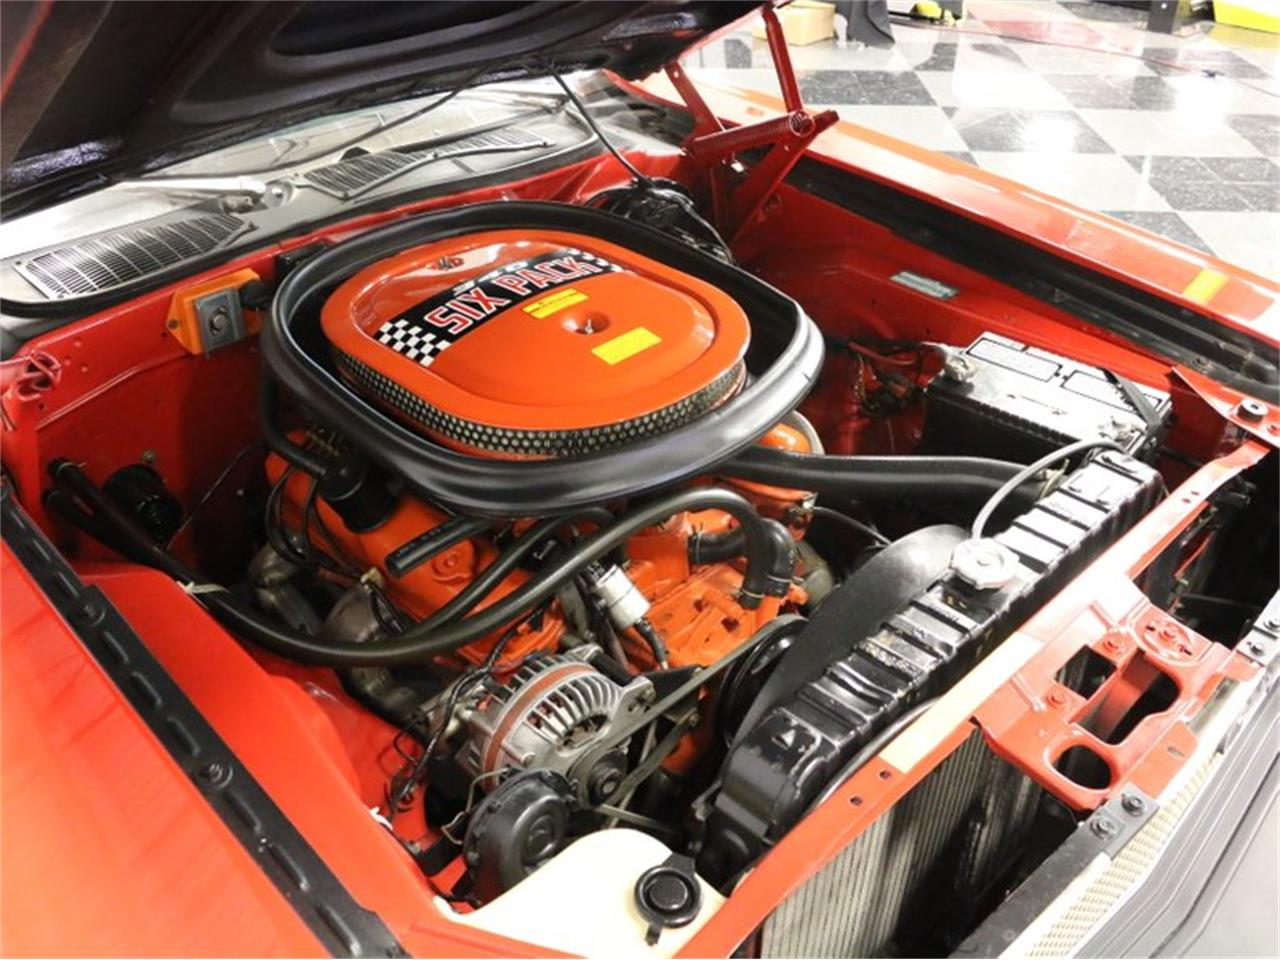 Large Picture of '70 Dodge Challenger T/A - $69,995.00 Offered by Streetside Classics - Dallas / Fort Worth - N7CT